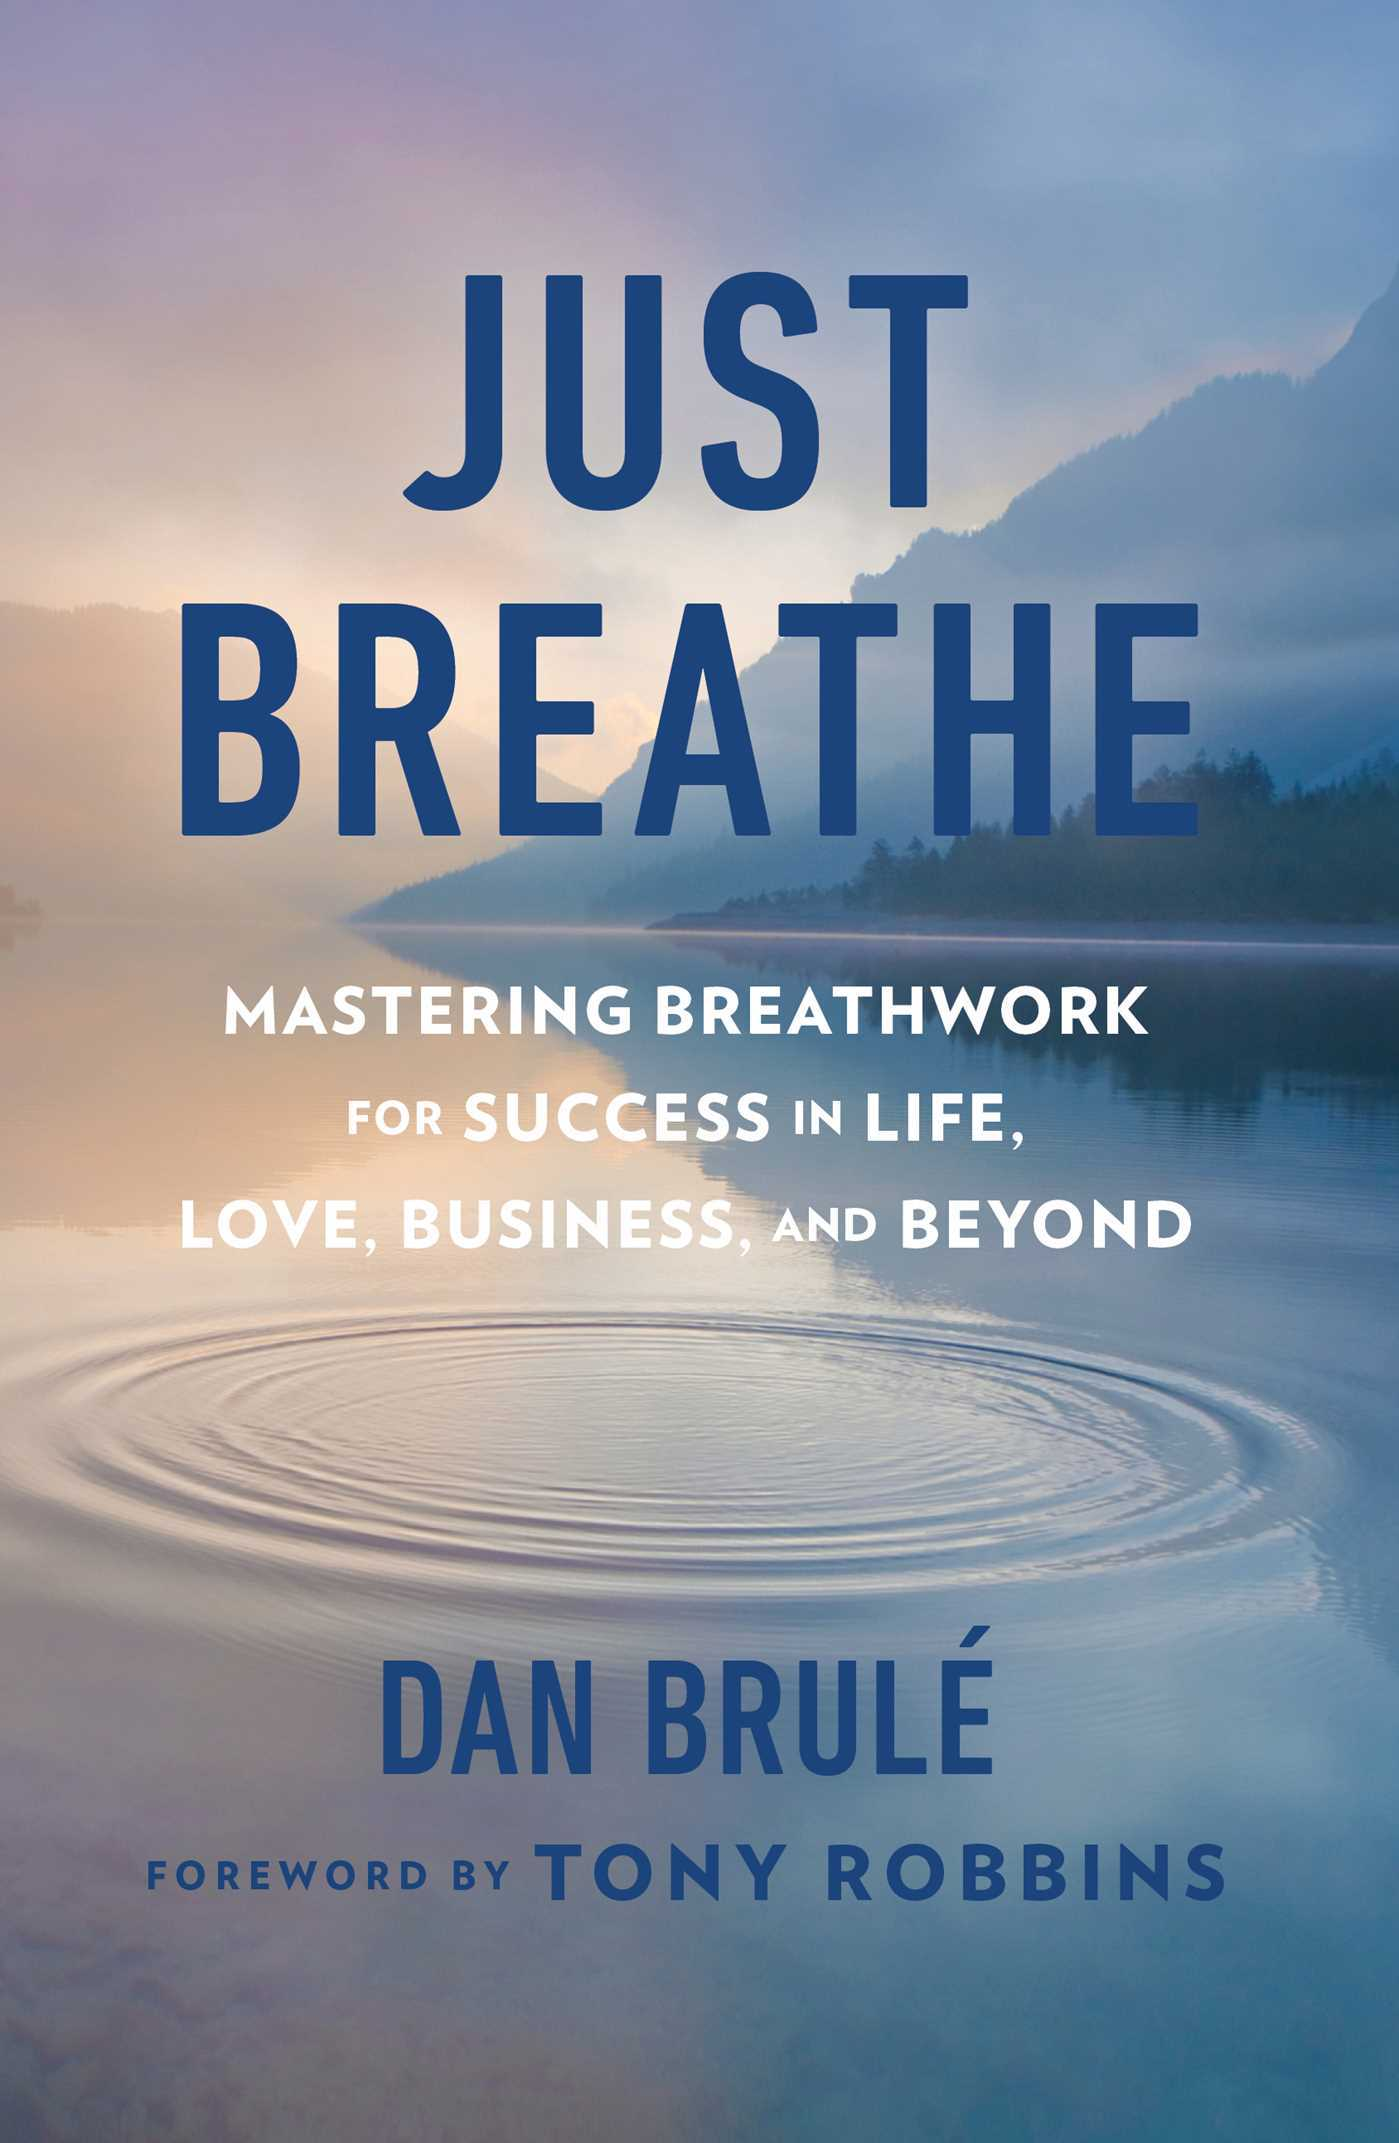 Just-Breathe-Mastering-Breathwork-for-Success-in-Life-Love-Business-and-Beyond